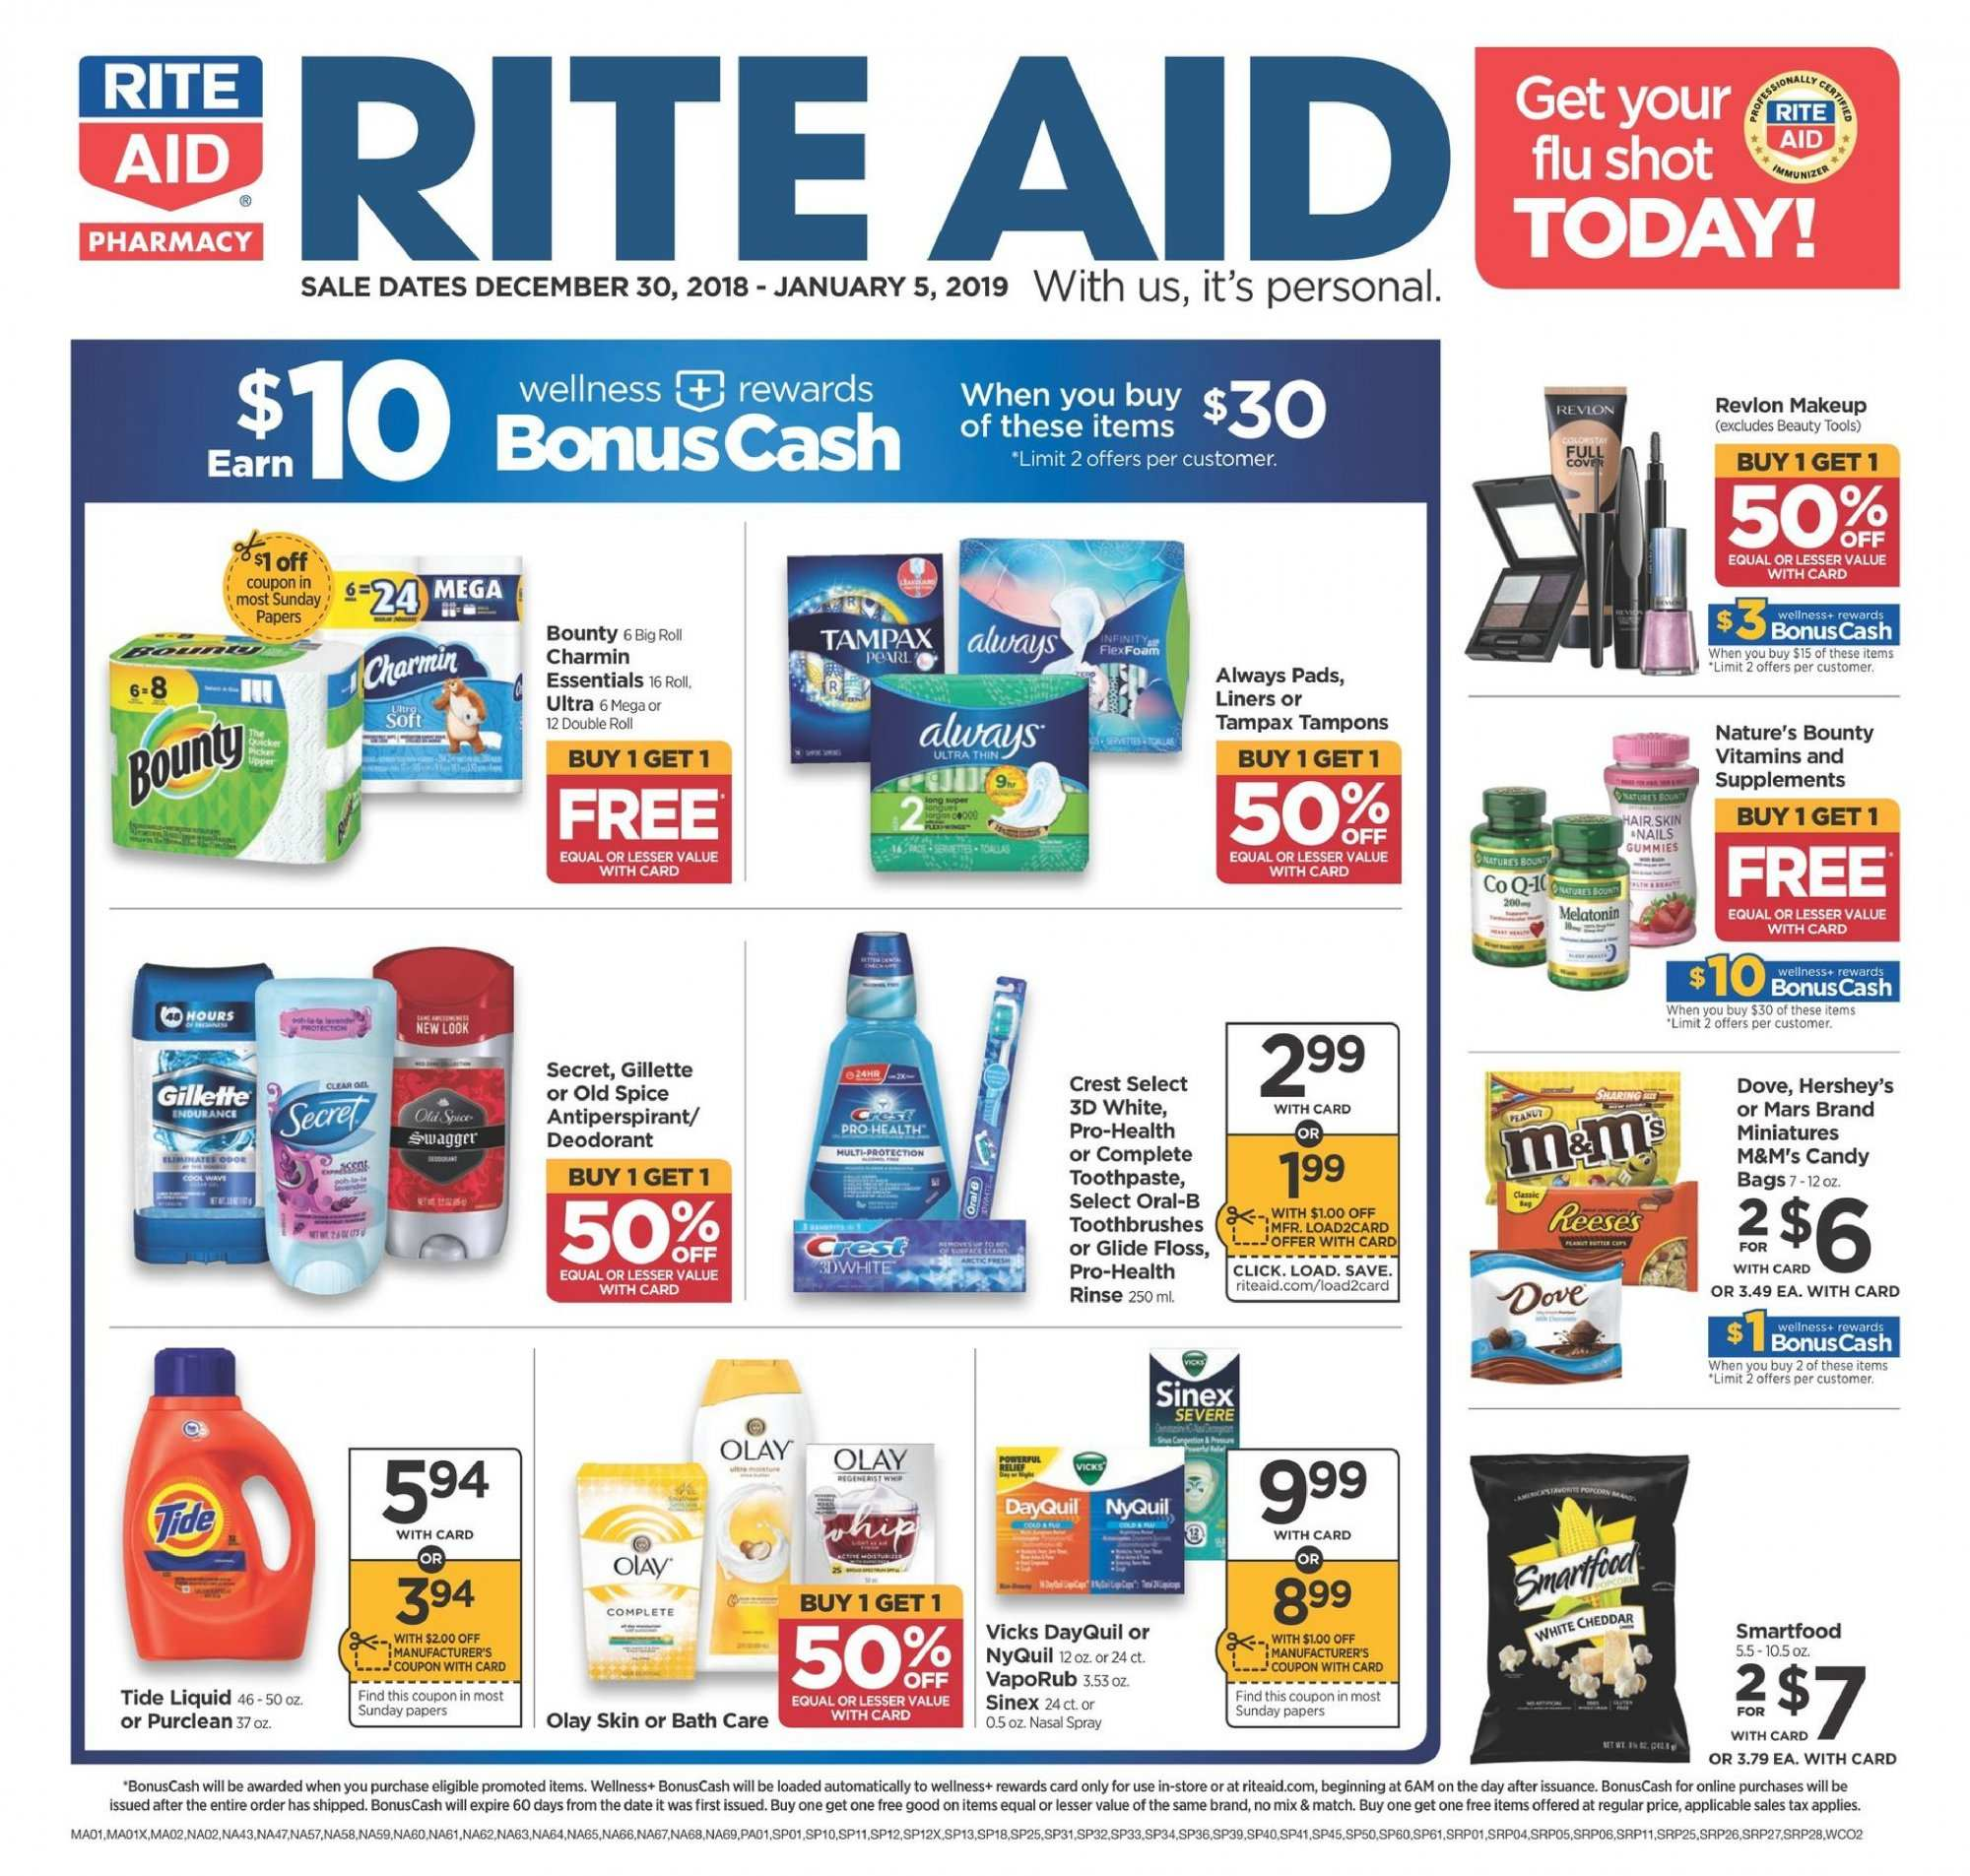 RITE AID Flyer - 12.30.2018 - 01.05.2019 - Sales products - always, bag, bath, crest, dates, deodorant, dove, gillette, makeup, nature's bounty, revlon, secret, spray, tampax, tide, nyquil, olay, old spice, pads, candy, toothpaste. Page 1.